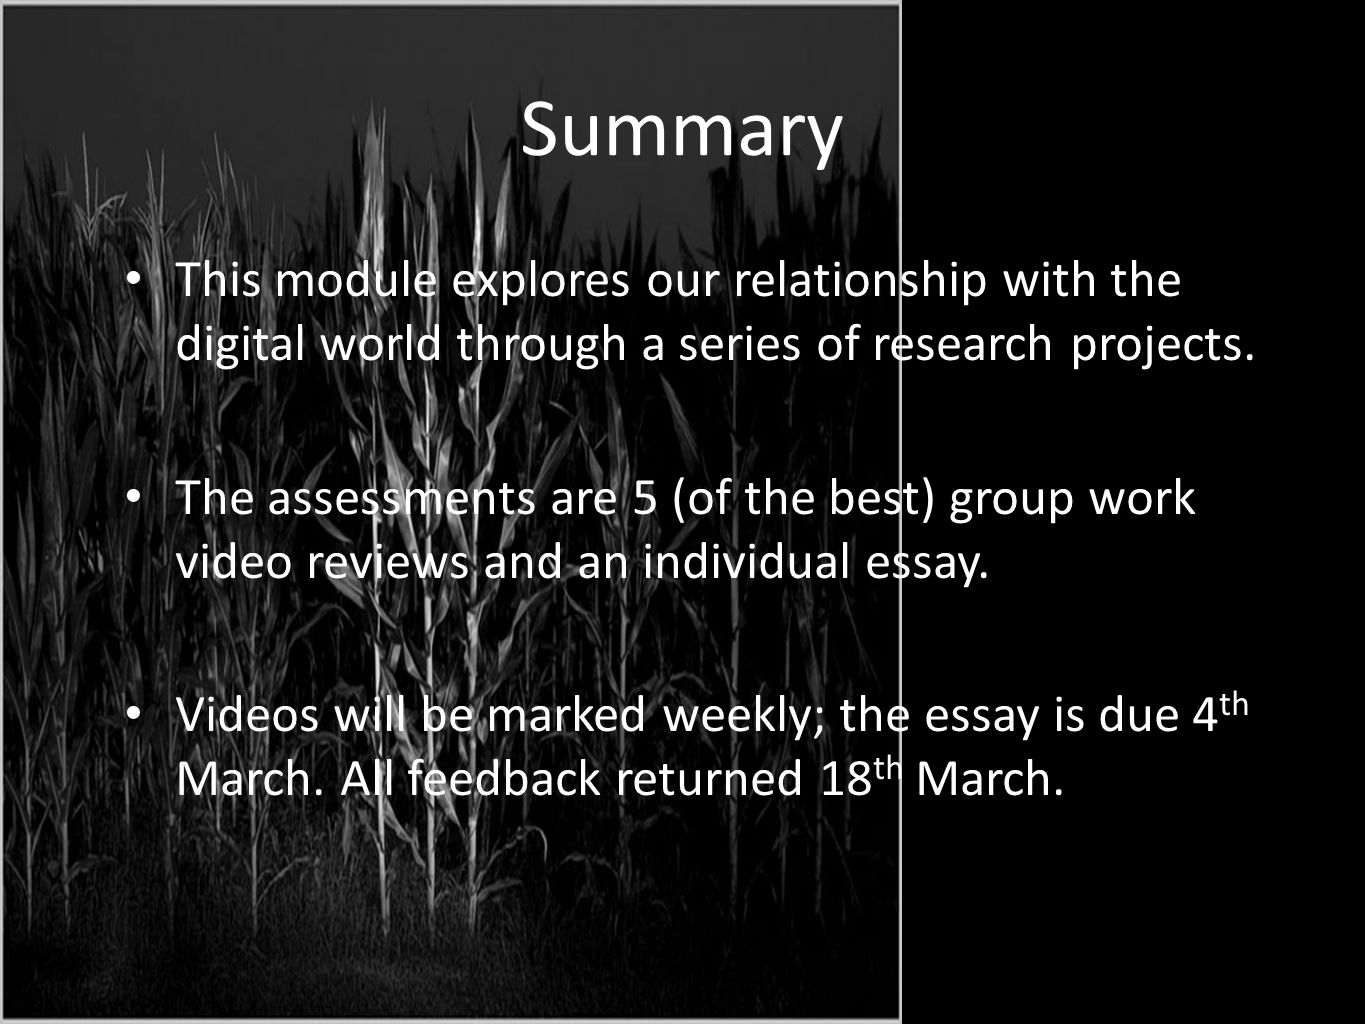 Summary This module explores our relationship with the digital world through a series of research projects. The assessments are 5 (of the best) group